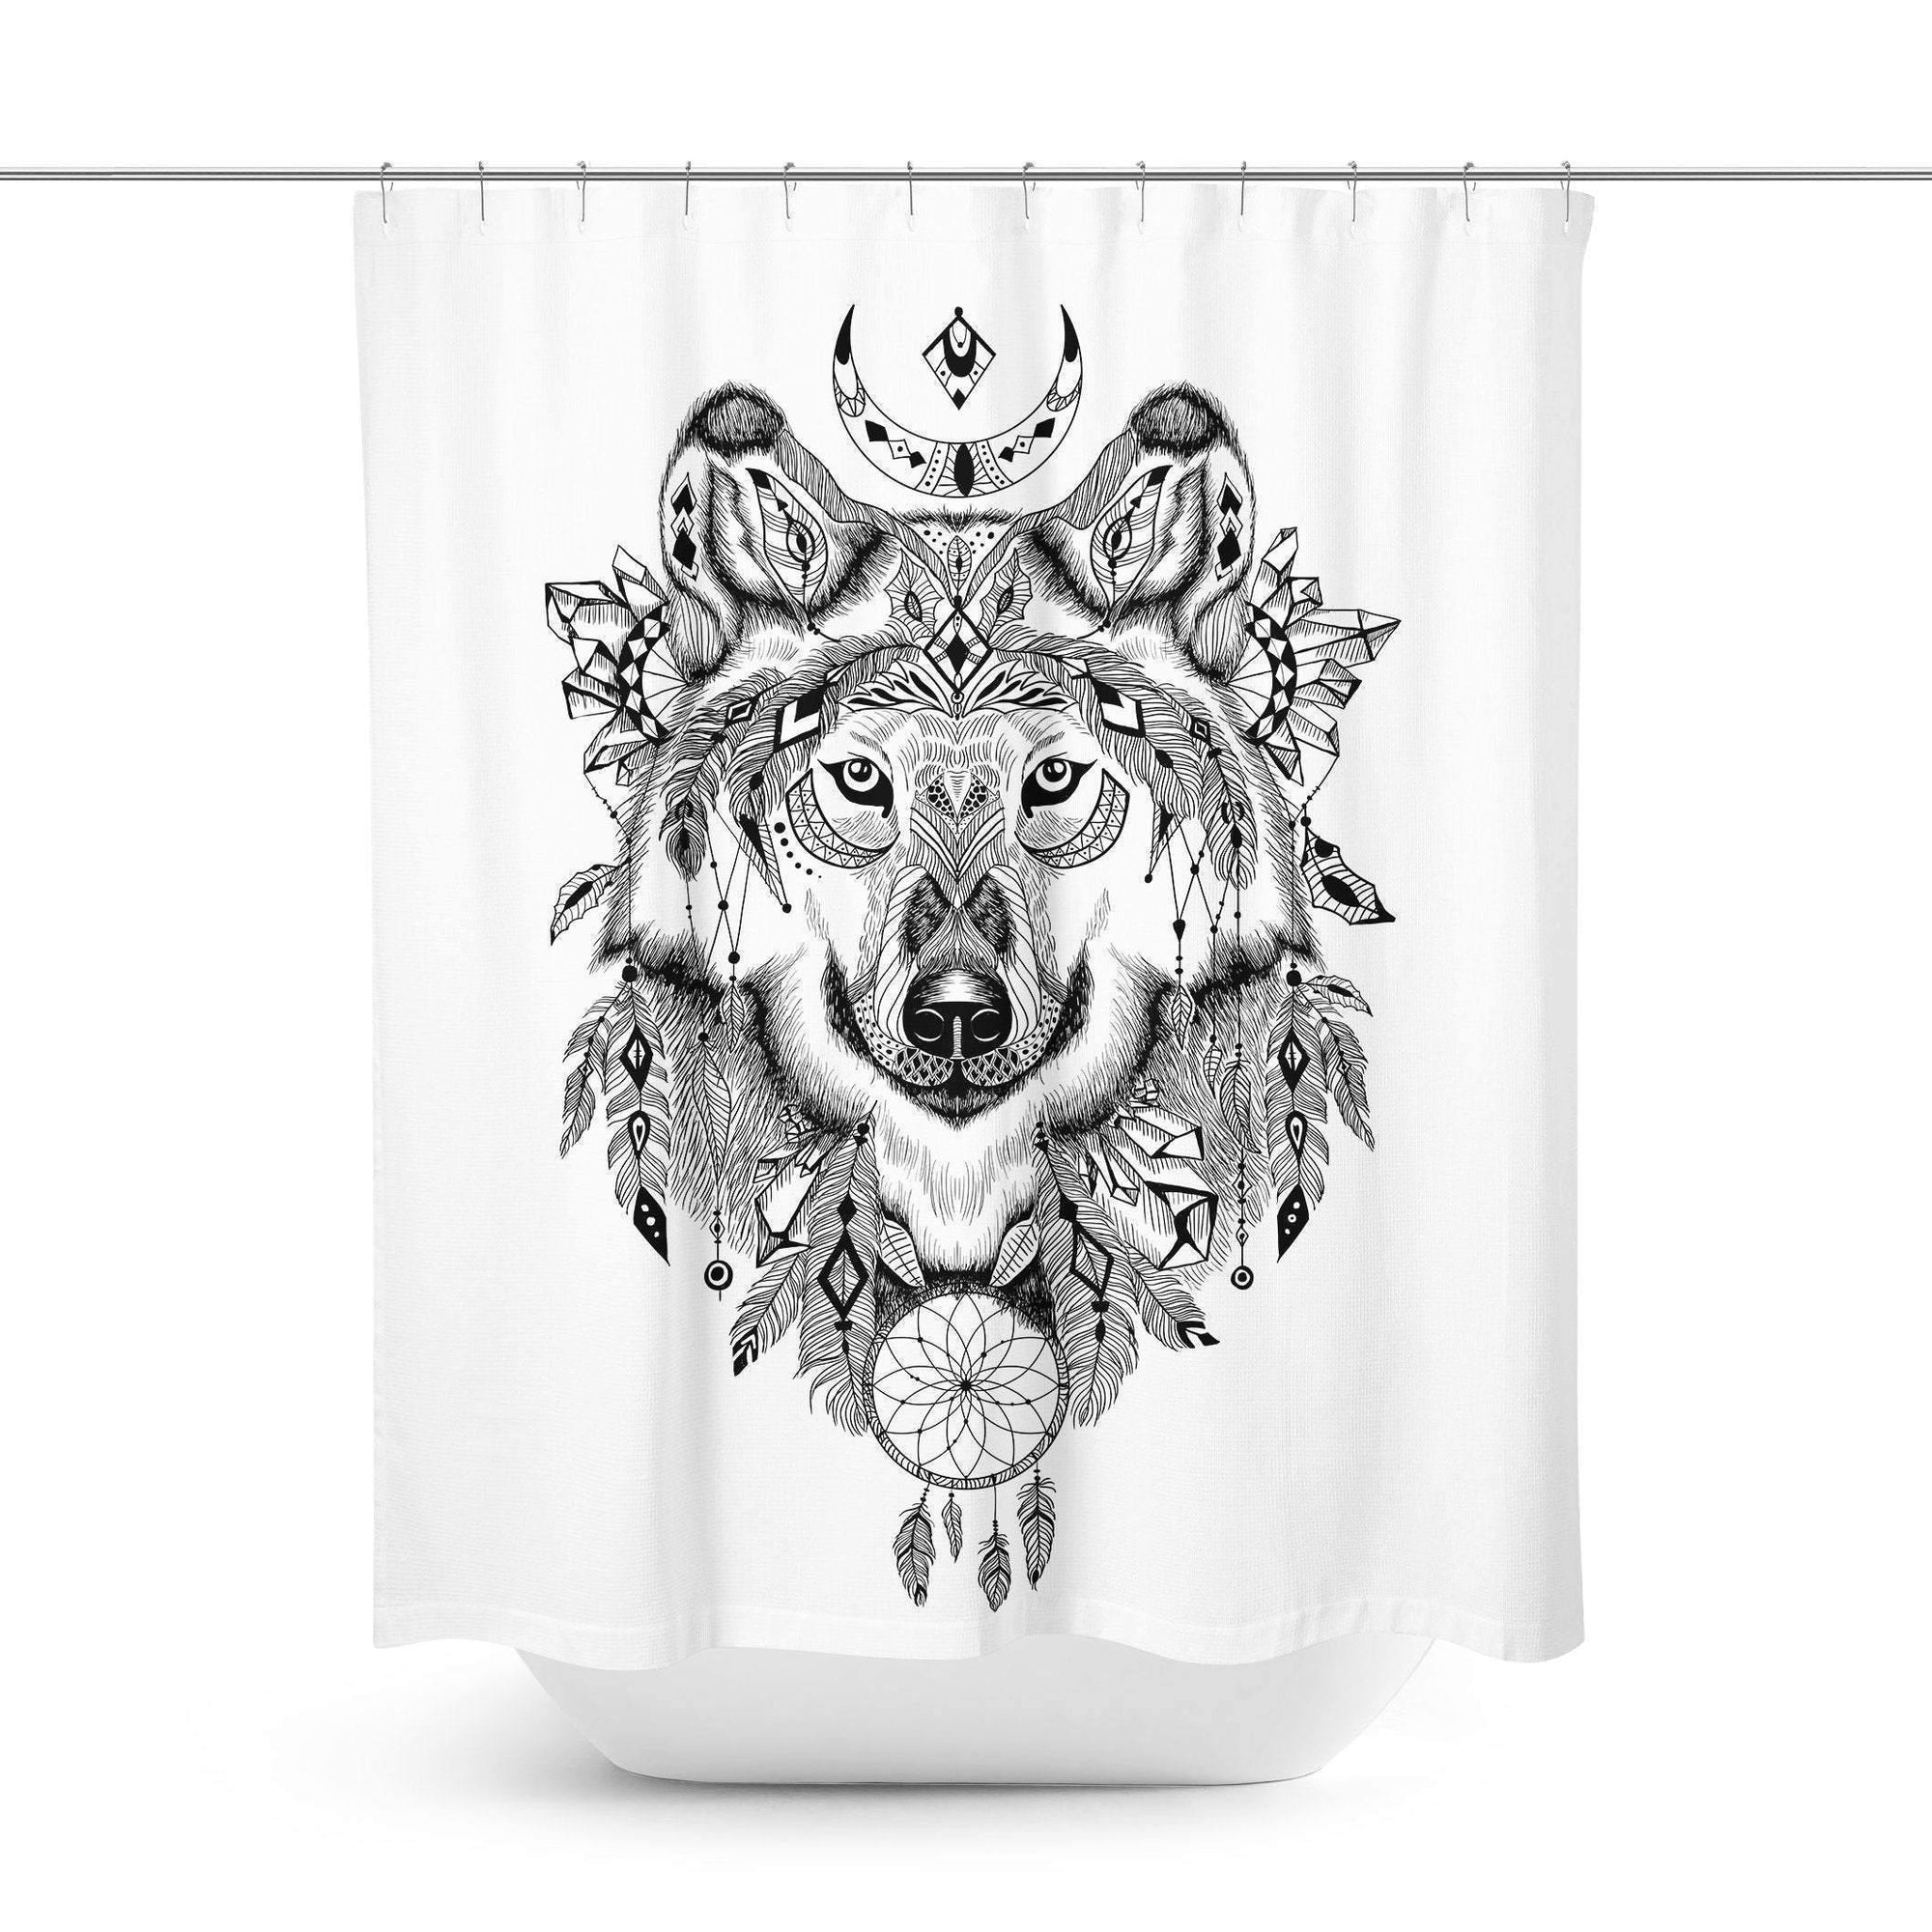 Boho Wolf Shower Curtain - Shower Curtains - W.FRANCIS